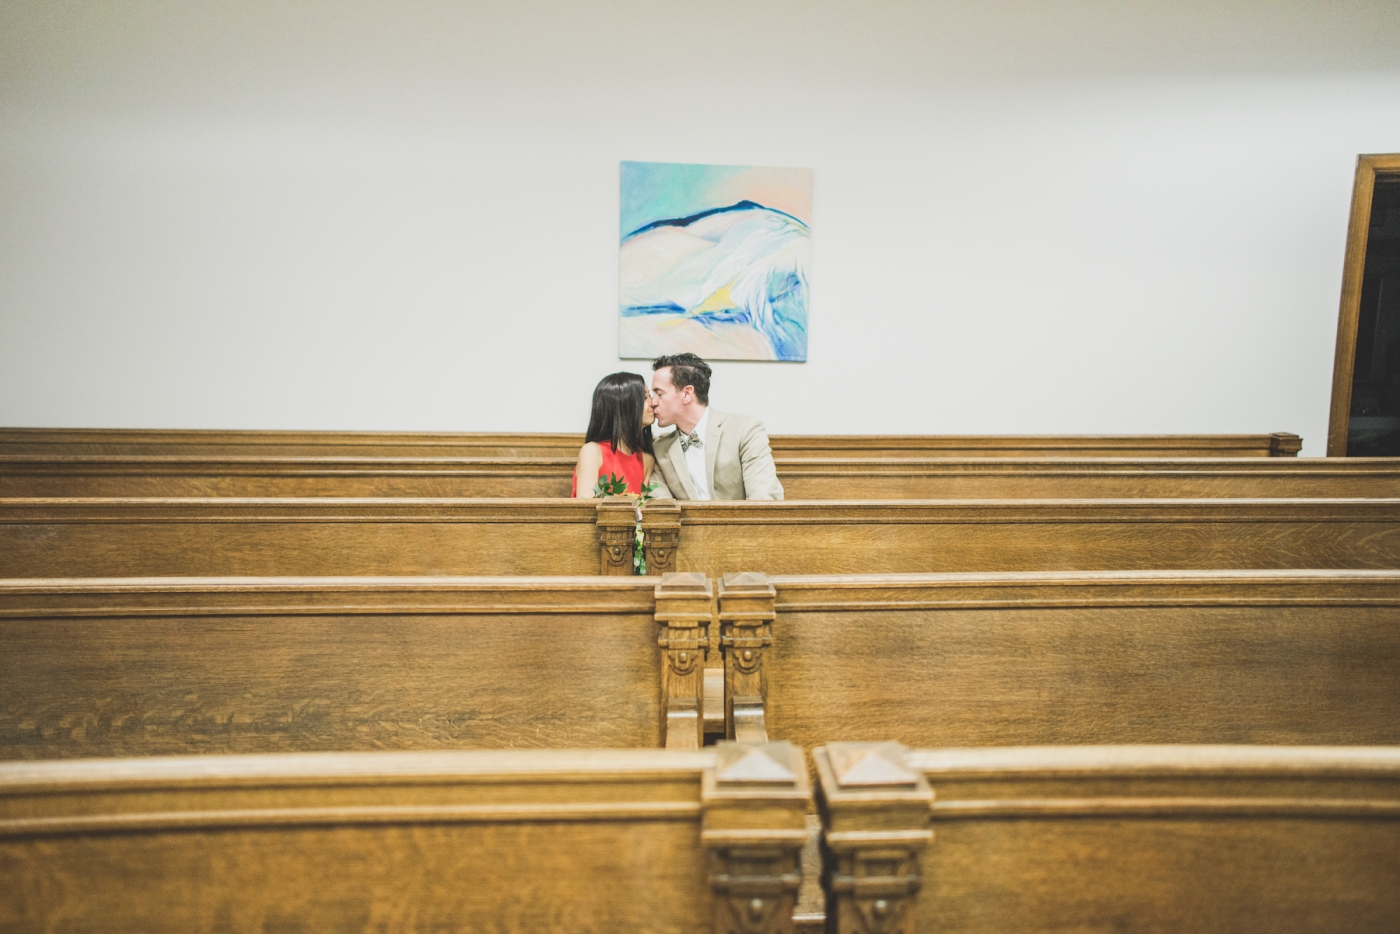 photography_by_jane_speleers_2017_seattle_court_house_wedding-dsc_9167